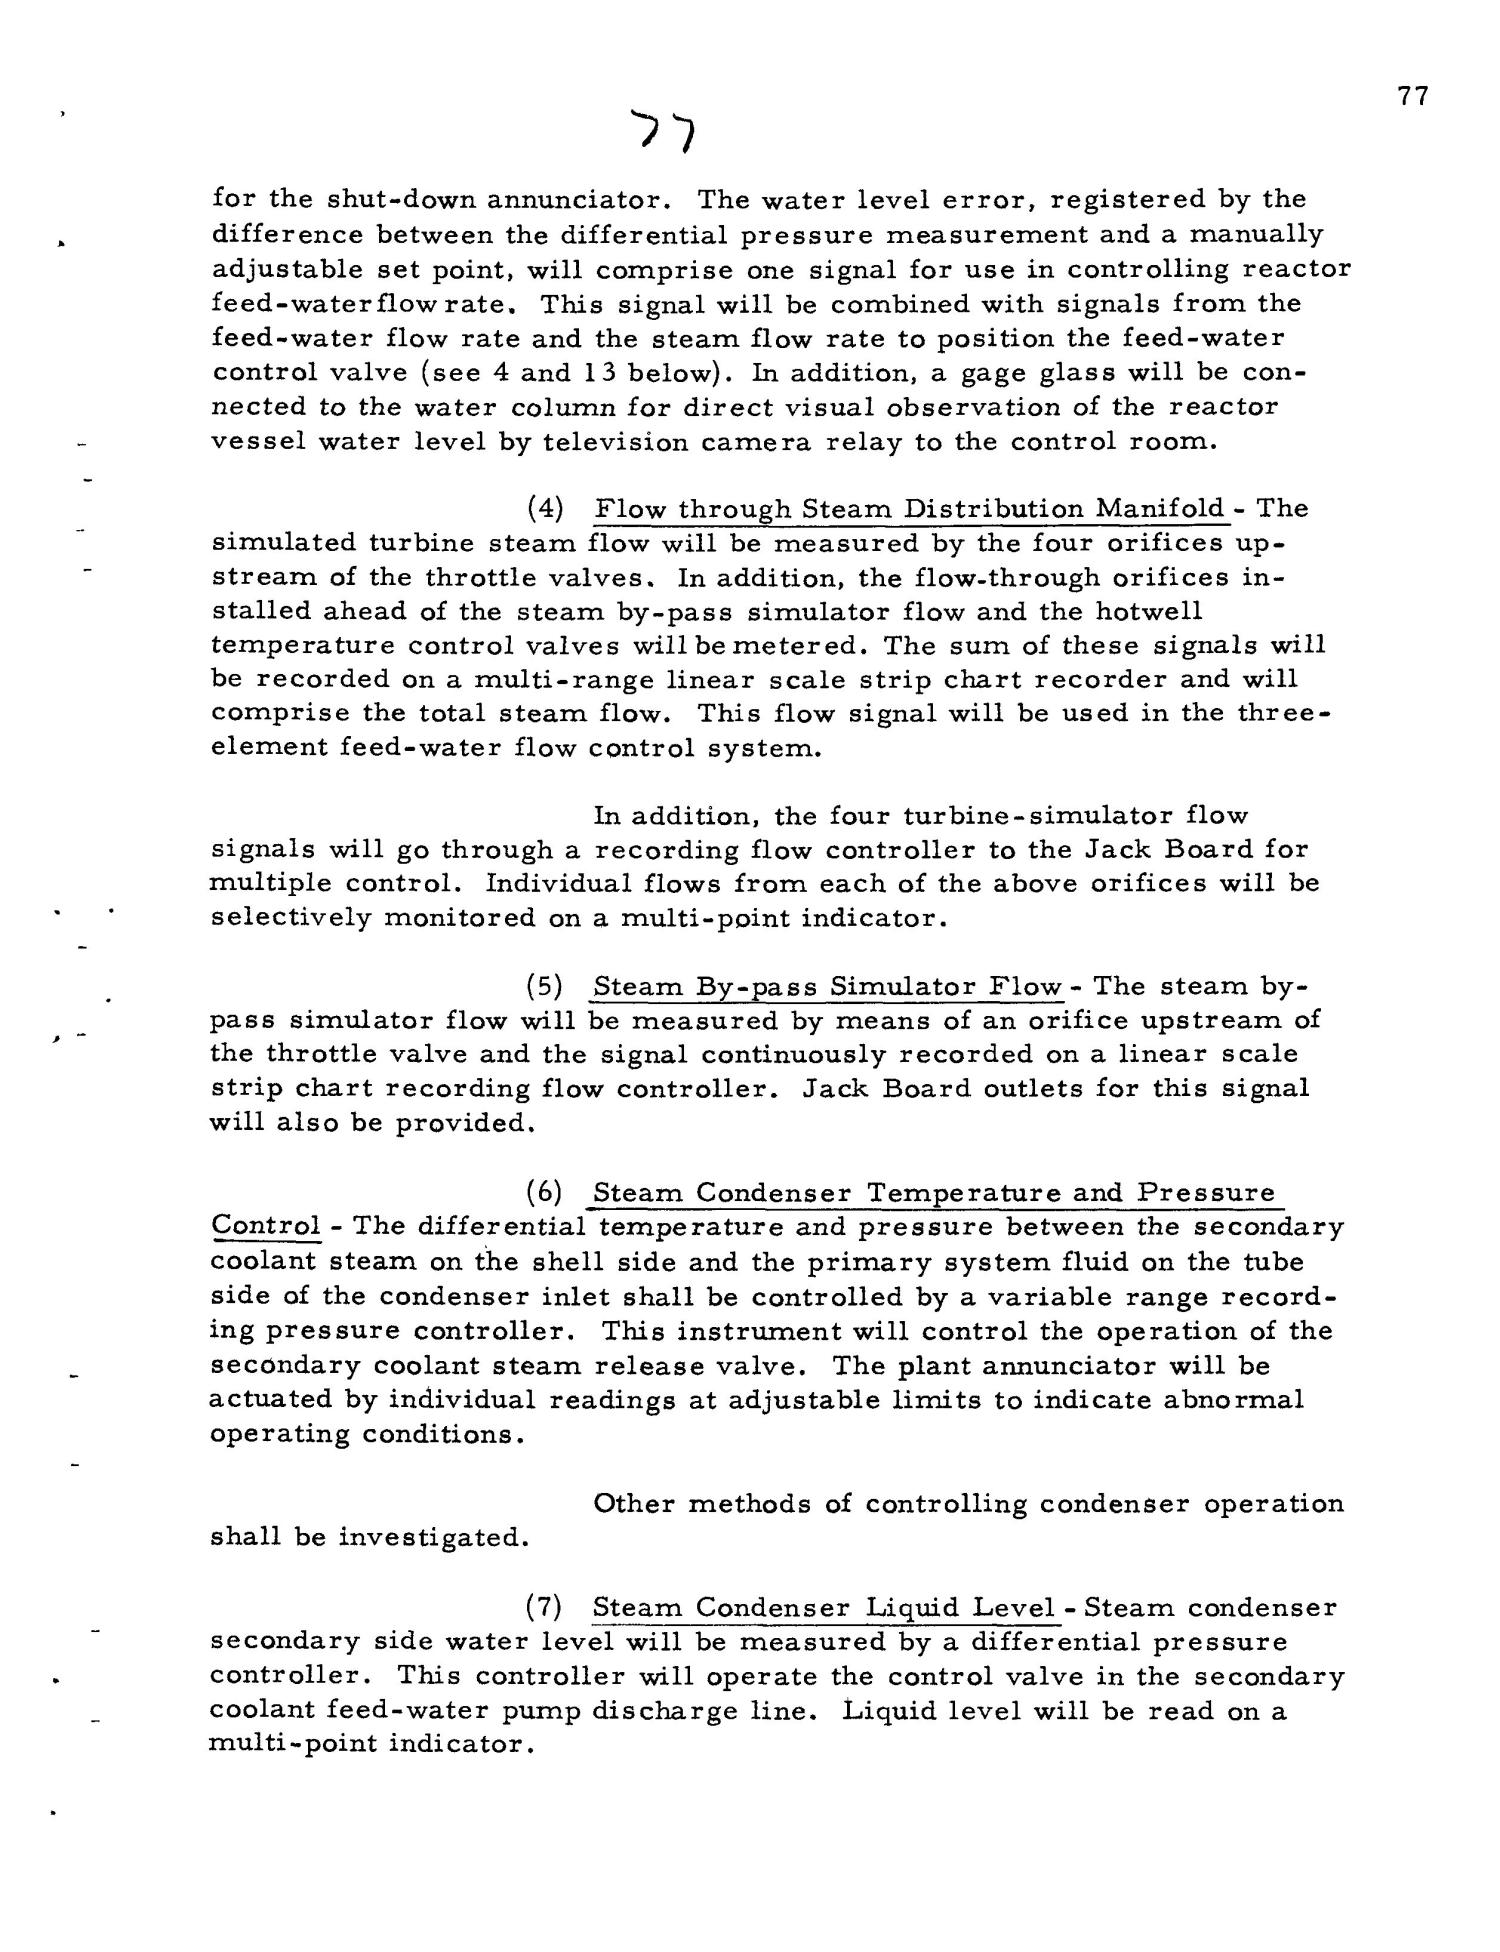 PRELIMINARY DESIGN REQUIREMENTS ARGONNE BOILING REACTOR (ARBOR) FACILITY. Revision I                                                                                                      [Sequence #]: 79 of 161